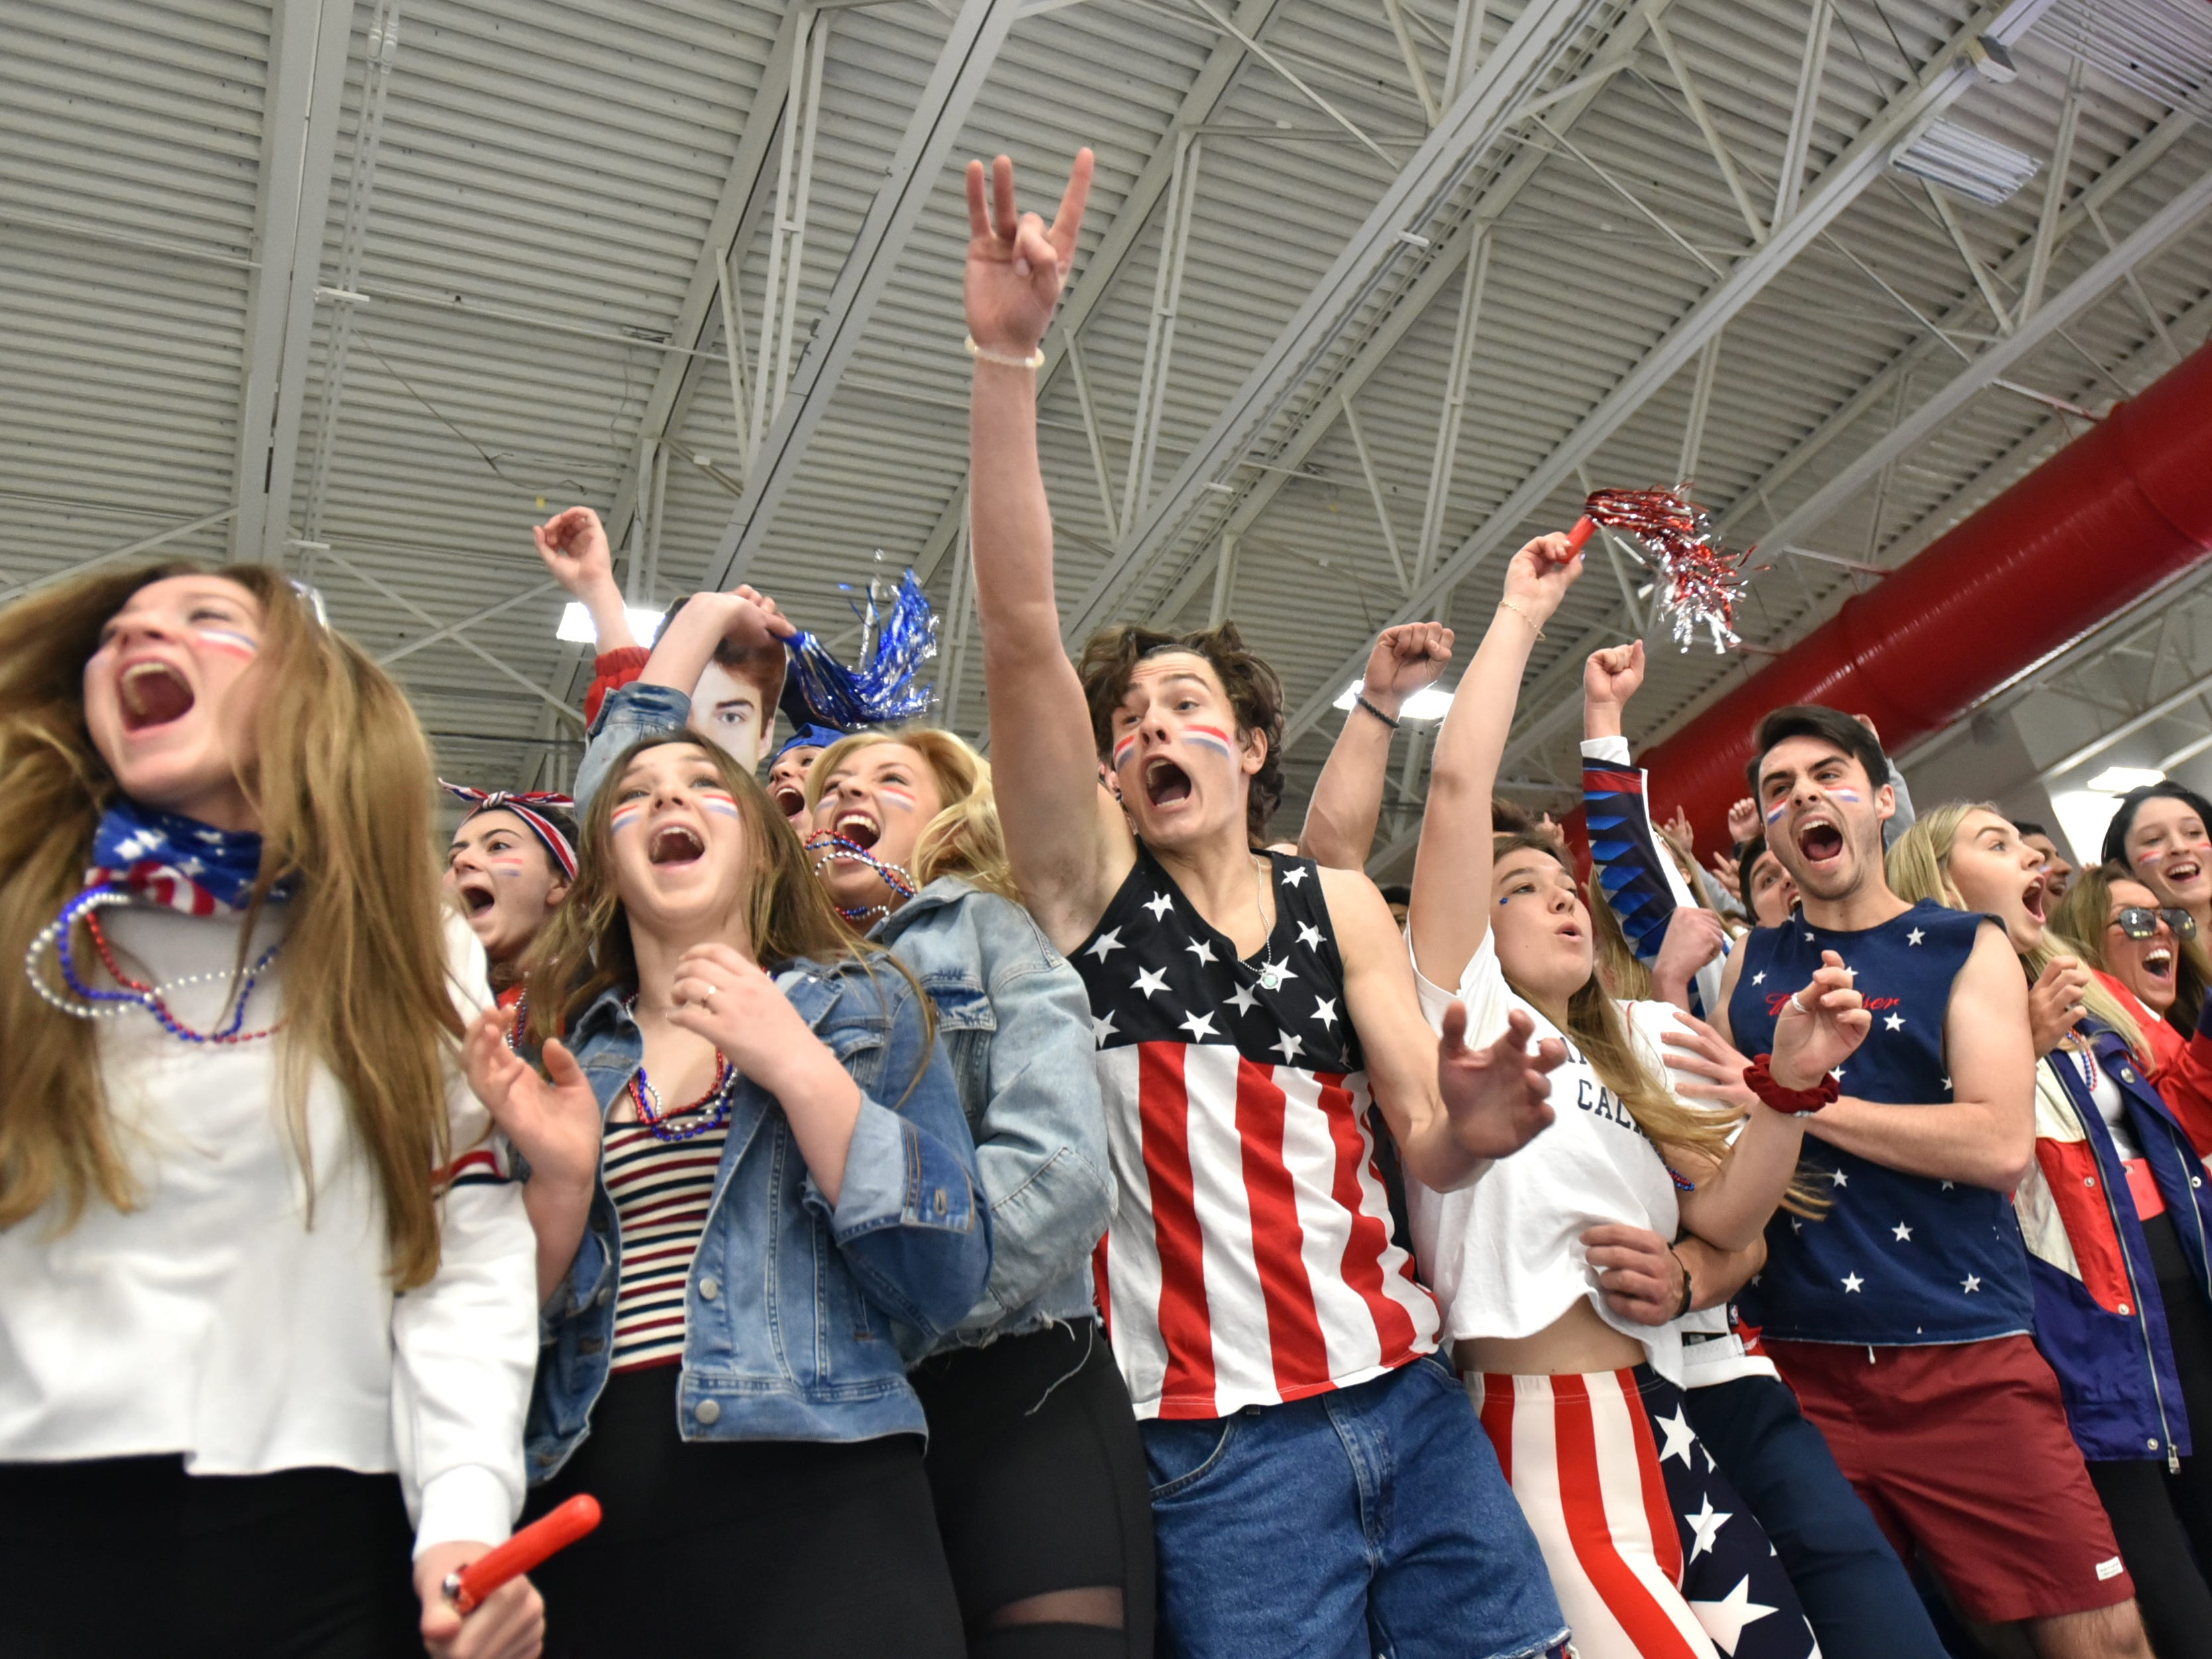 Detroit Country Day hockey fans celebrate the teams' first goal against Houghton on March 9, 2019 at USA Hockey Arena in Plymouth, MI.